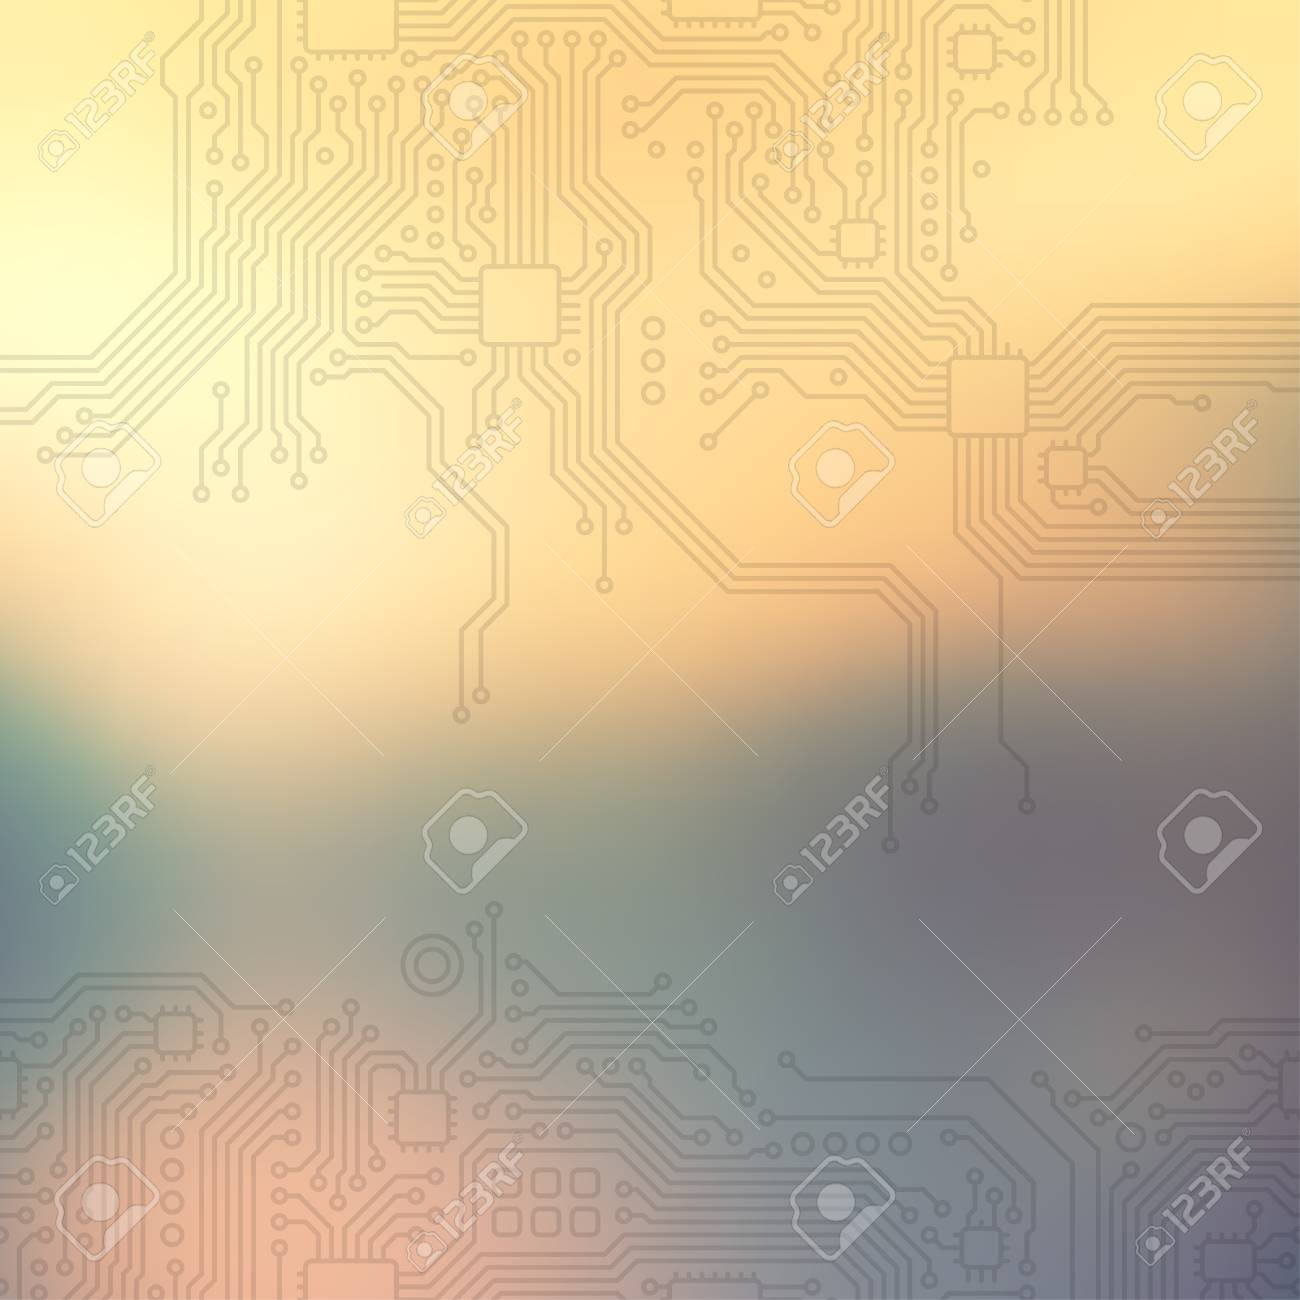 High-tech technology abstract background. - 41736941